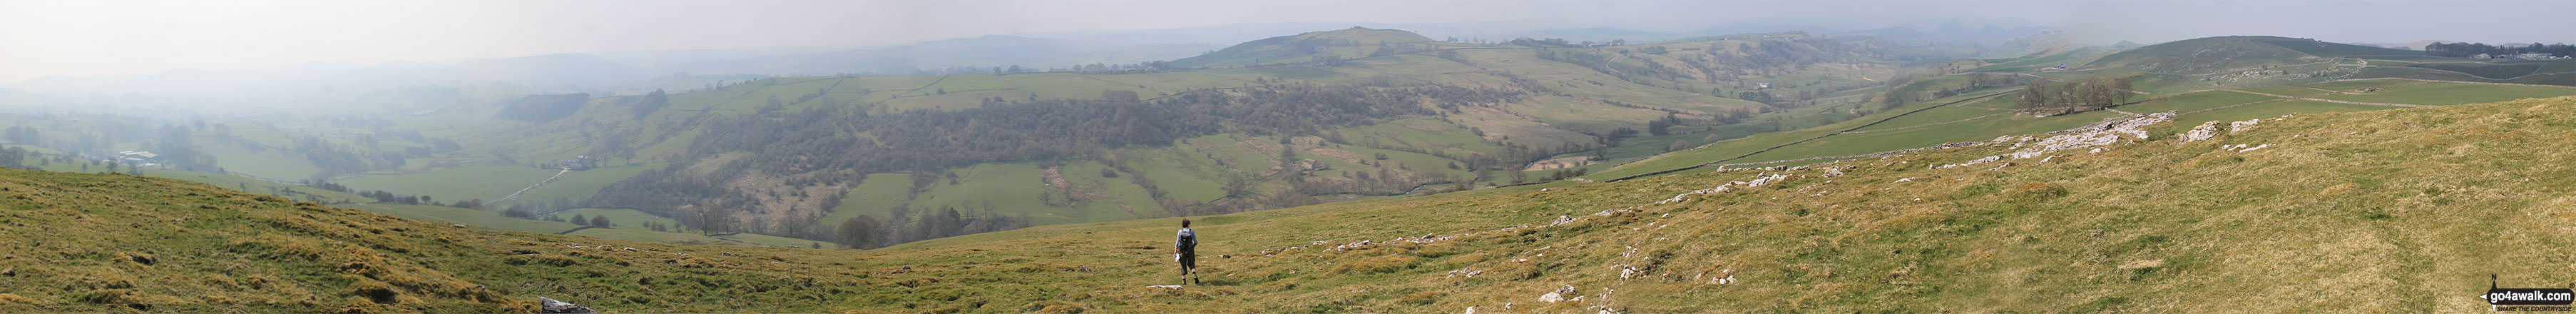 Panorama of the Upper Dove Dale valley from the summit of Carder Low